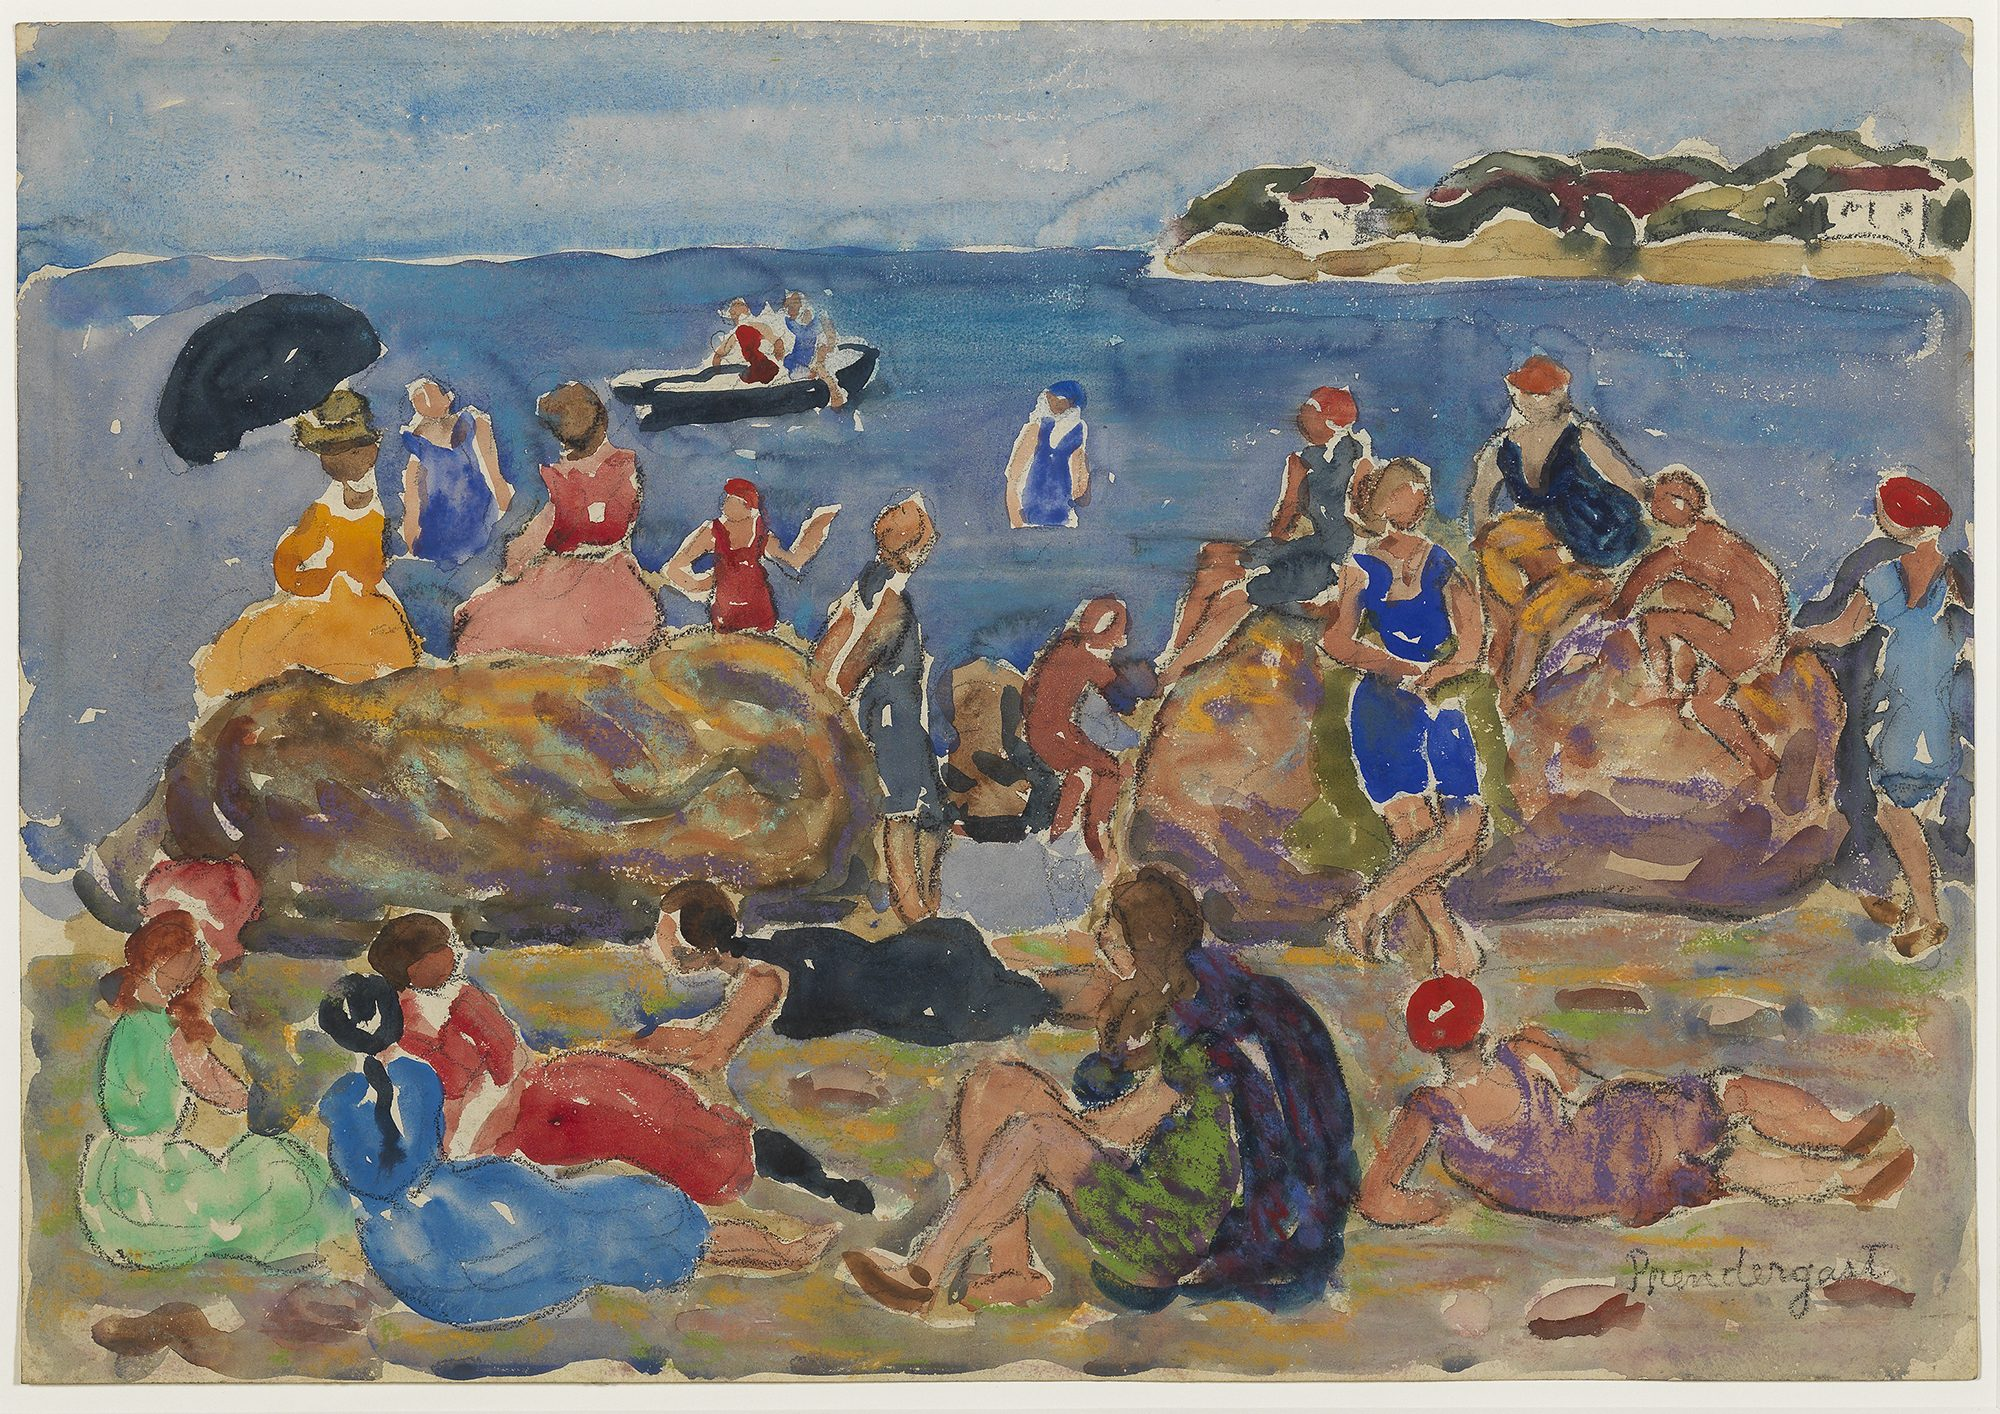 Maurice Brazil Prendergast, (American, 1858-1924), The Cove, Gloucester, Mass., ca. 1920-1923. Watercolor, pastel and charcoal on paper, 13 7/8 x 19 7/8 in. Gift of Mrs. Charles Prendergast in honor of President John W. Chandler. 85.16.1